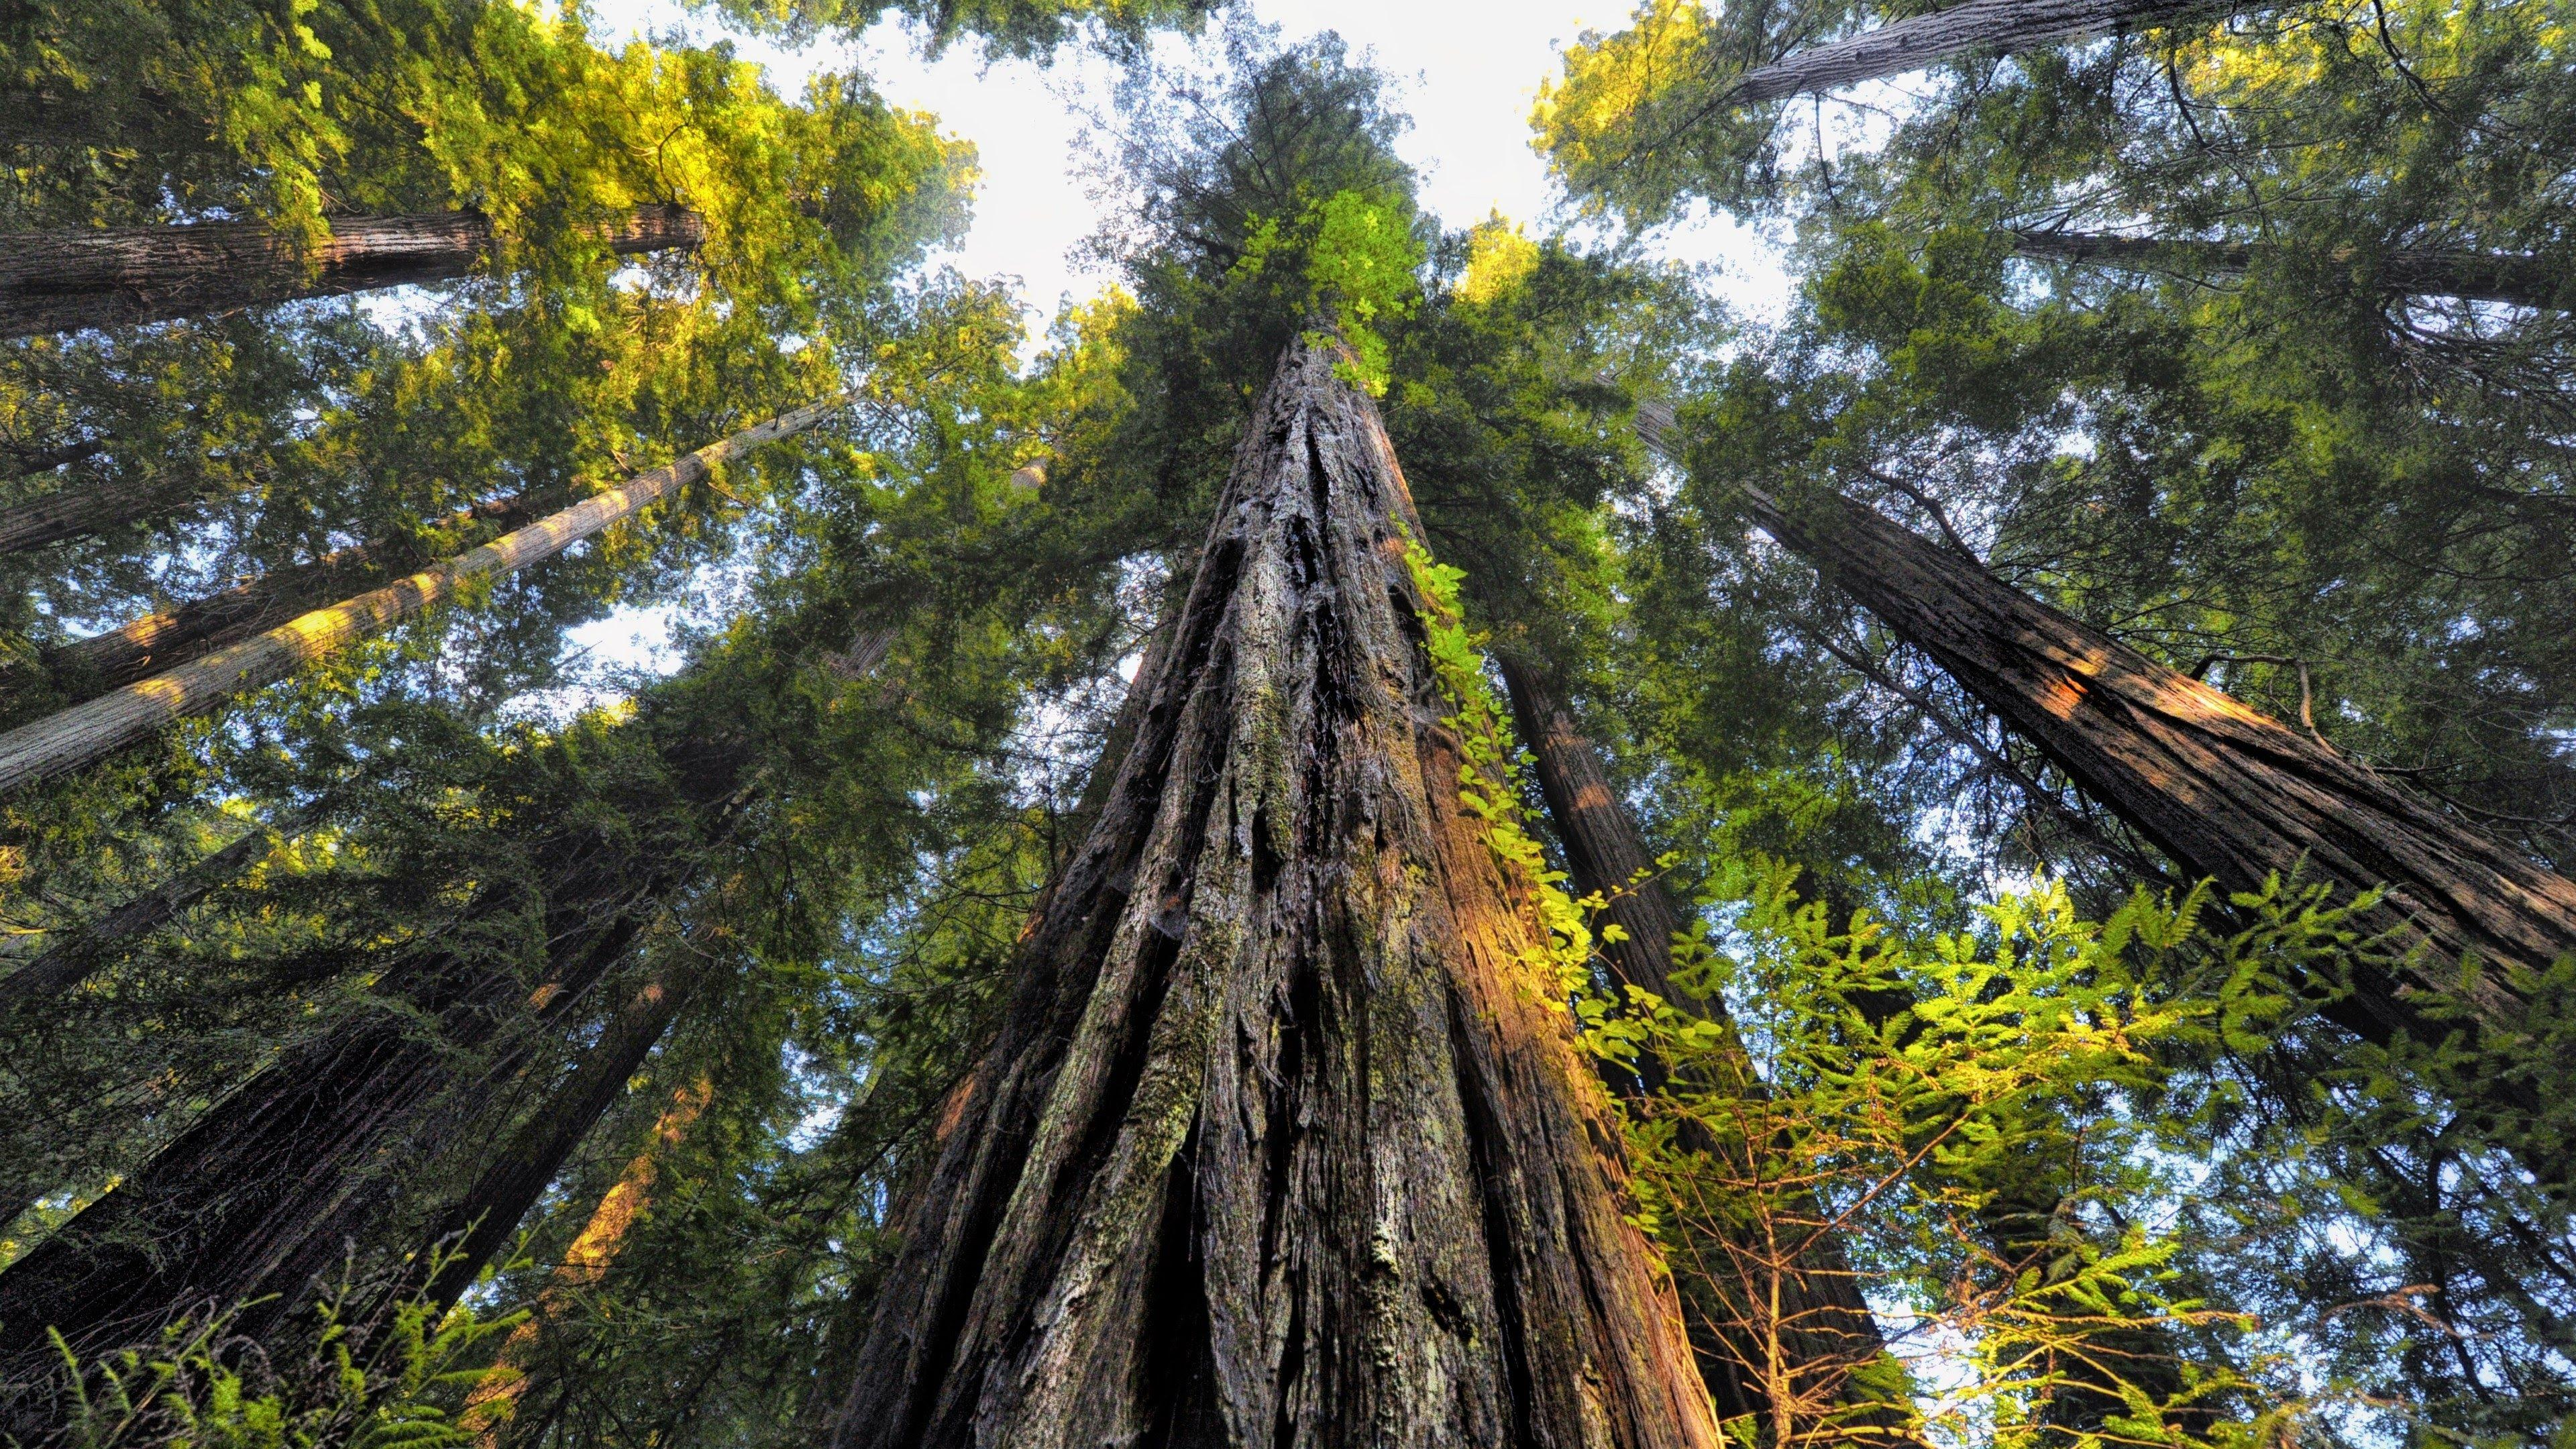 Download 3840x2160 Forest, Old Trees, Worm View, Sequoia National